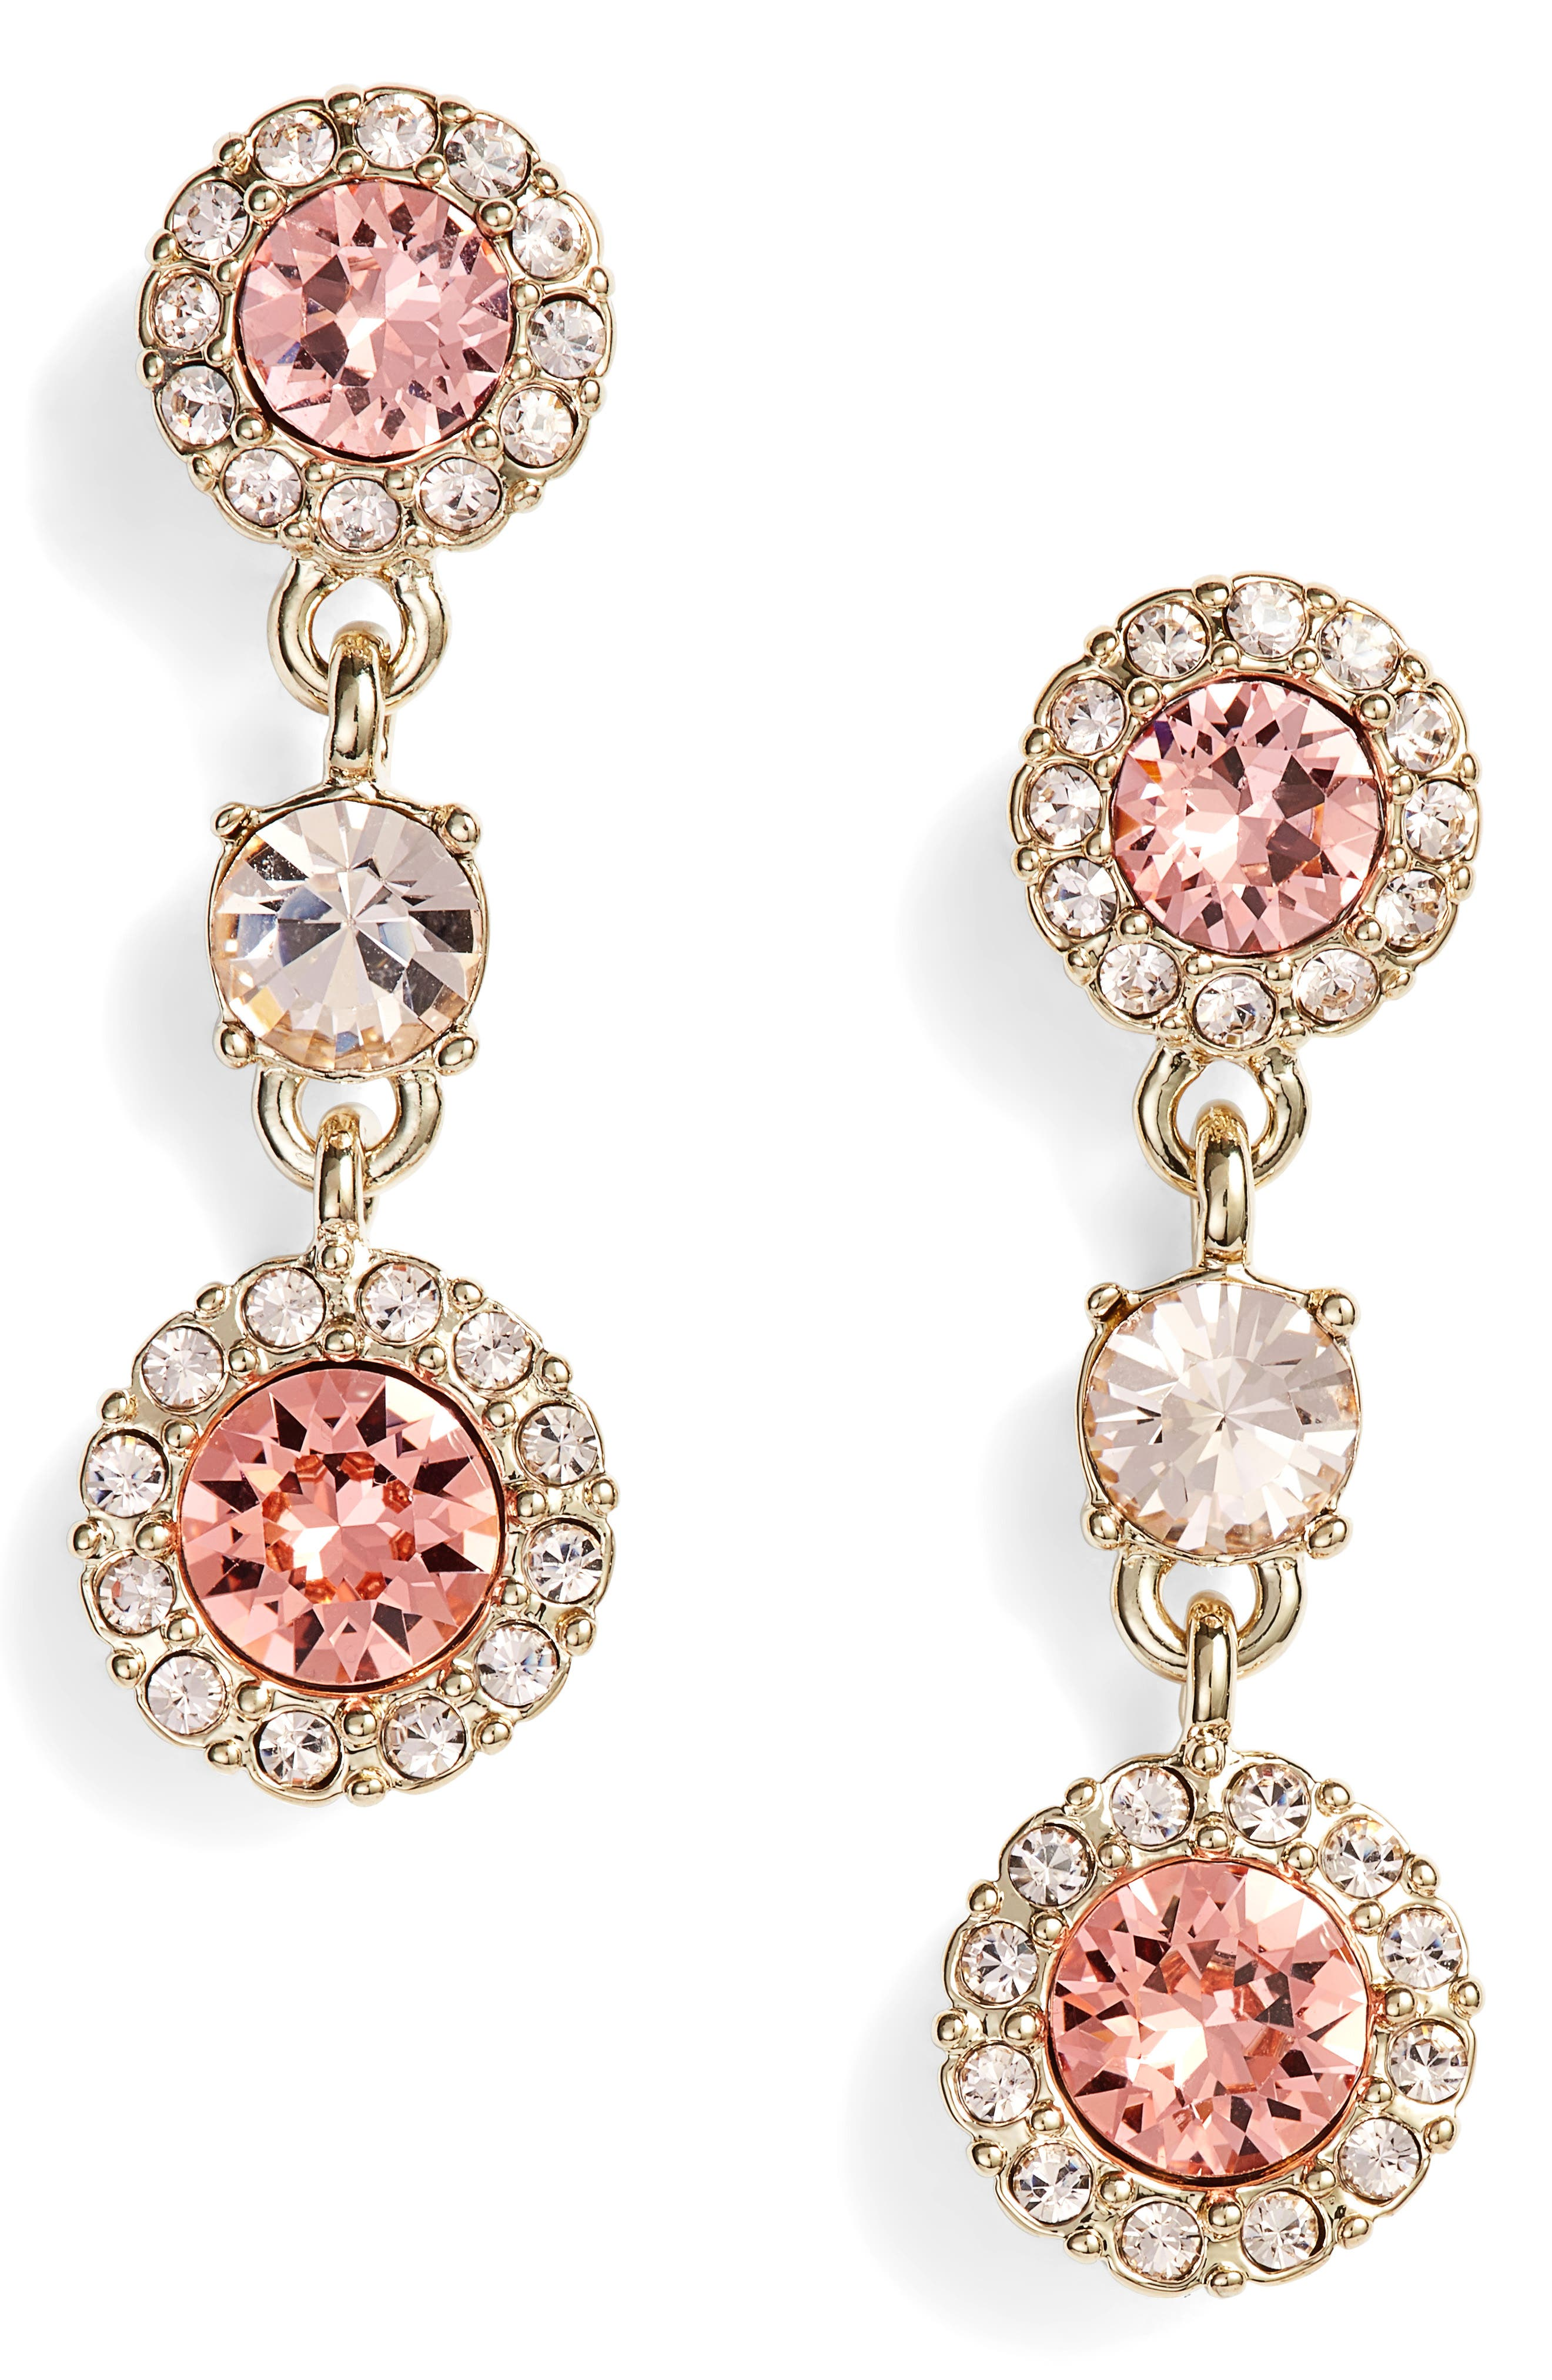 Givenchy Swarovski Crystal Triple Drop Earrings